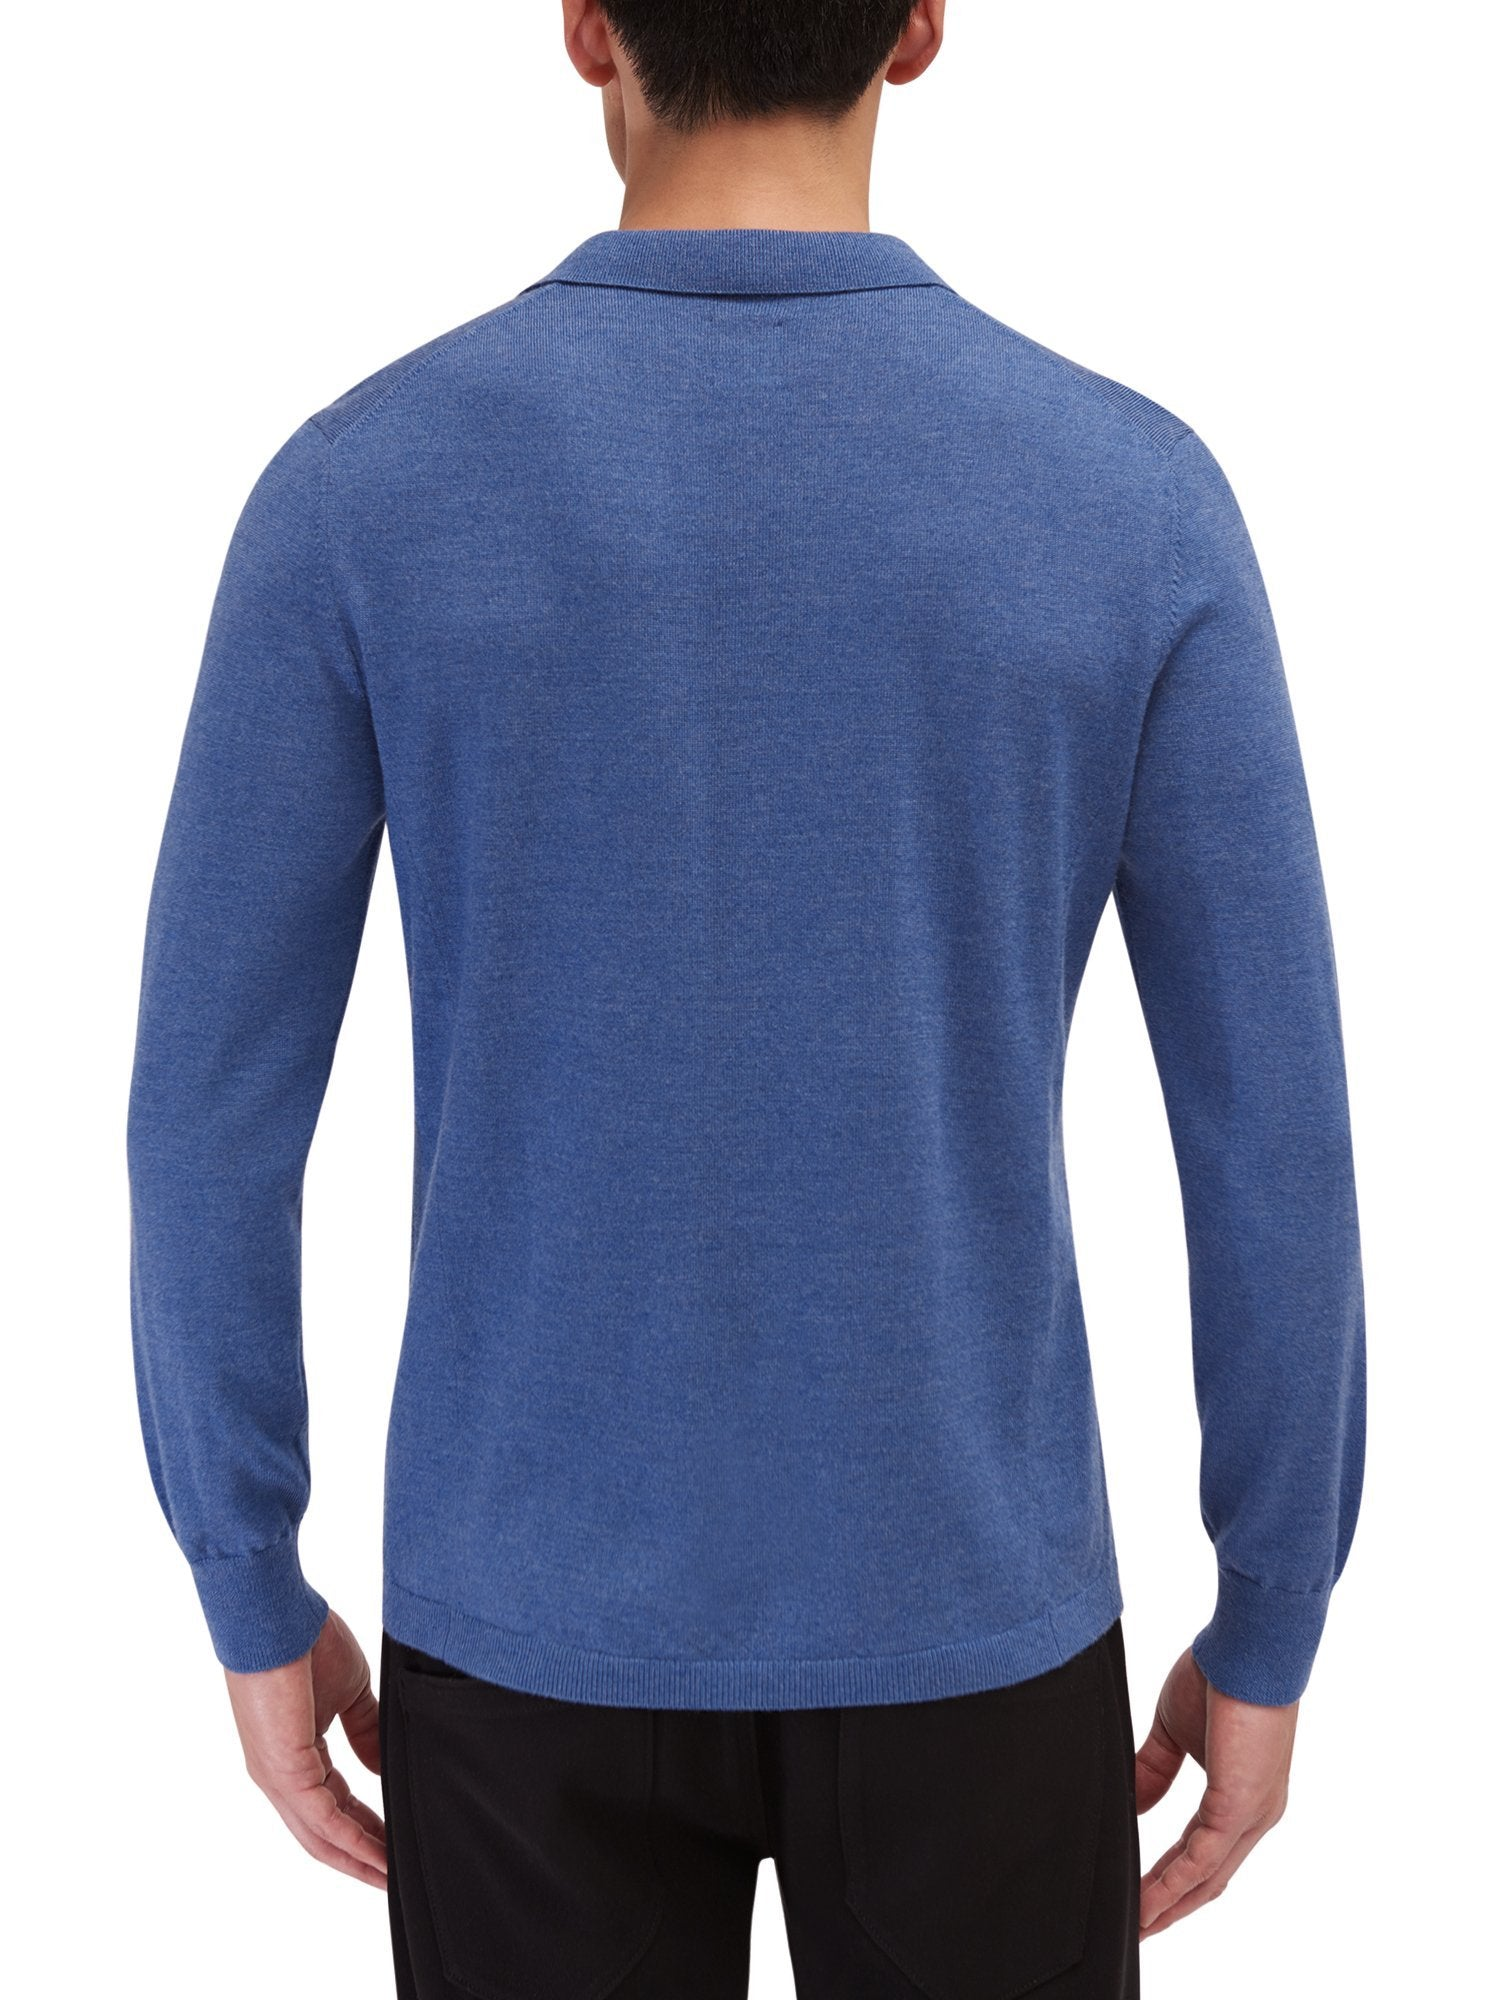 Wilmot Pullover - EFM Menswear - Engineered For Motion